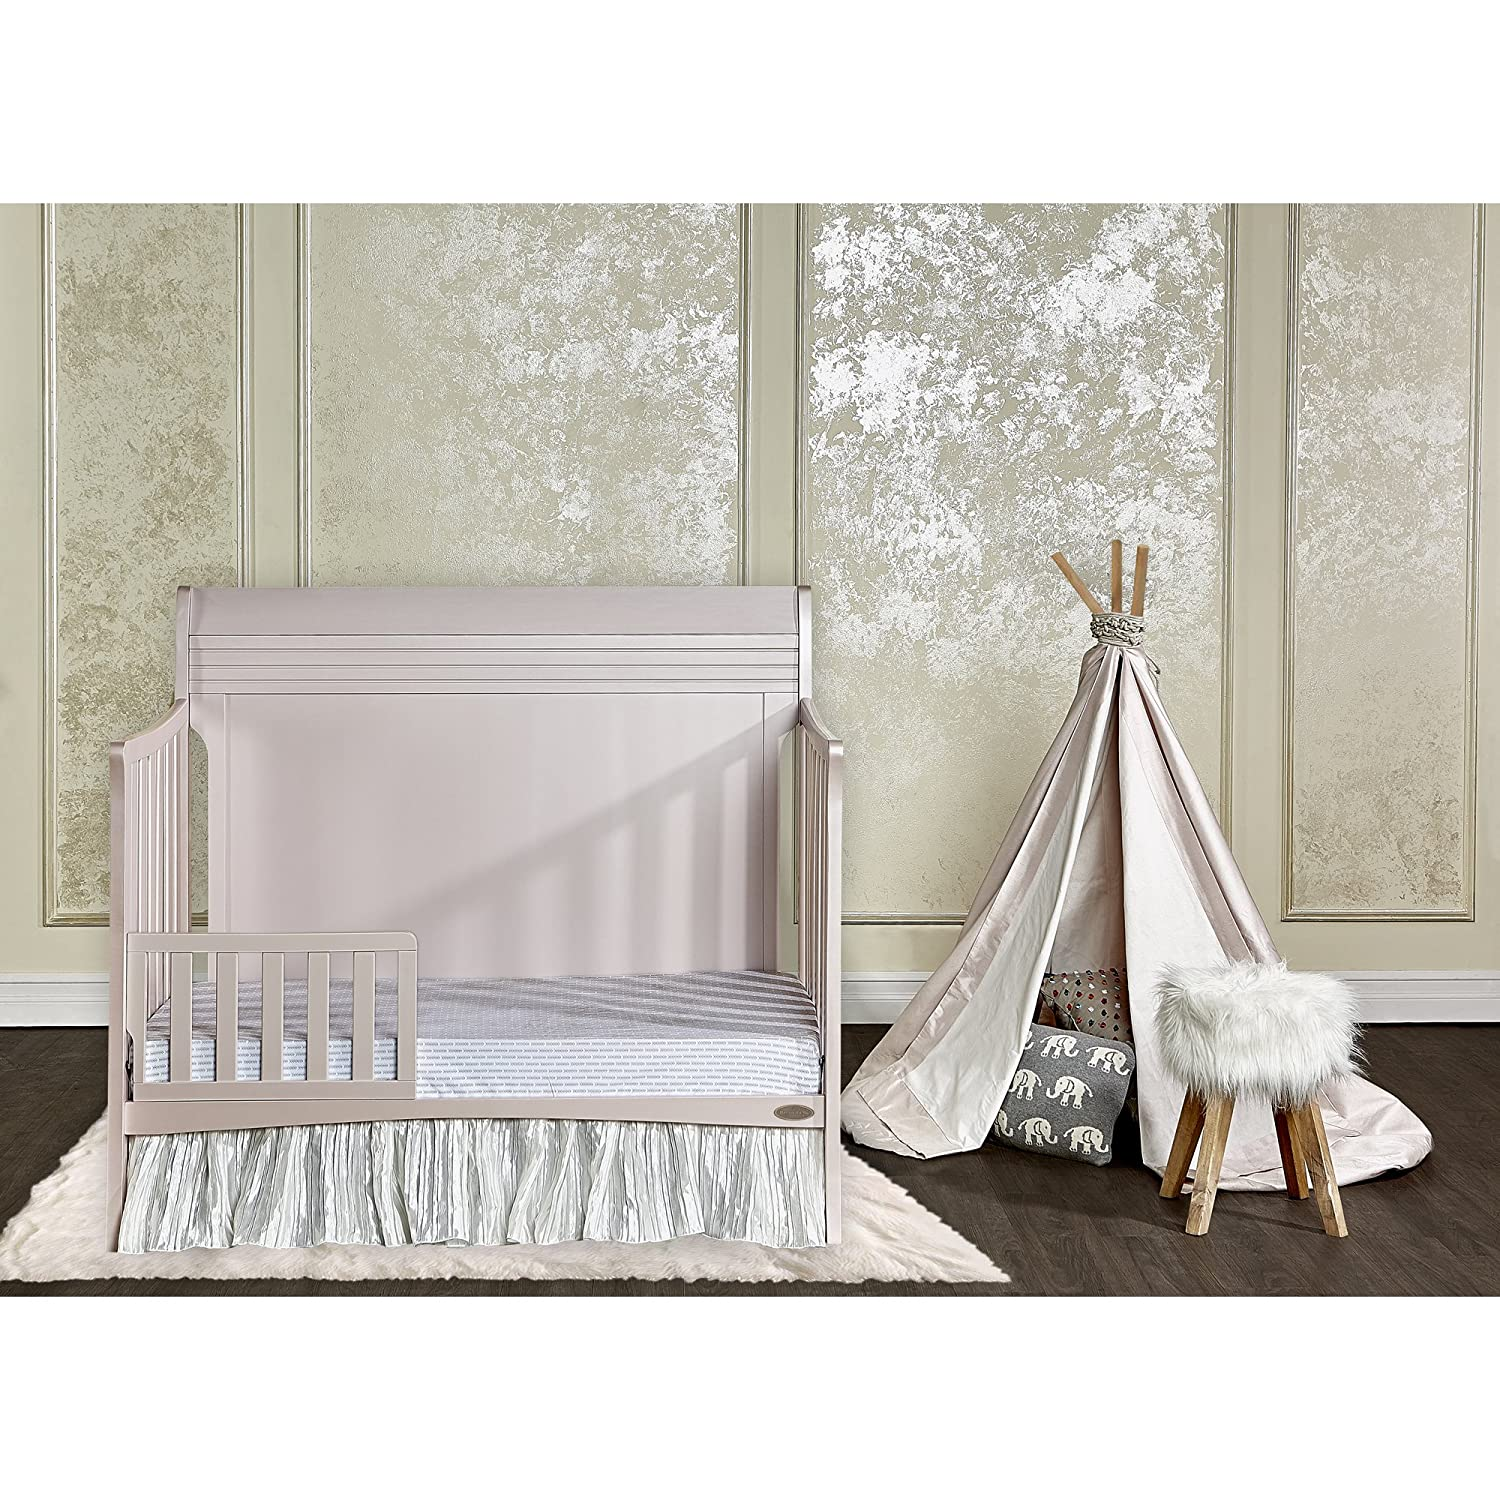 Amazon.com : Dream On Me Bailey 5 In 1 Convertible Crib, Blush Pink : Baby